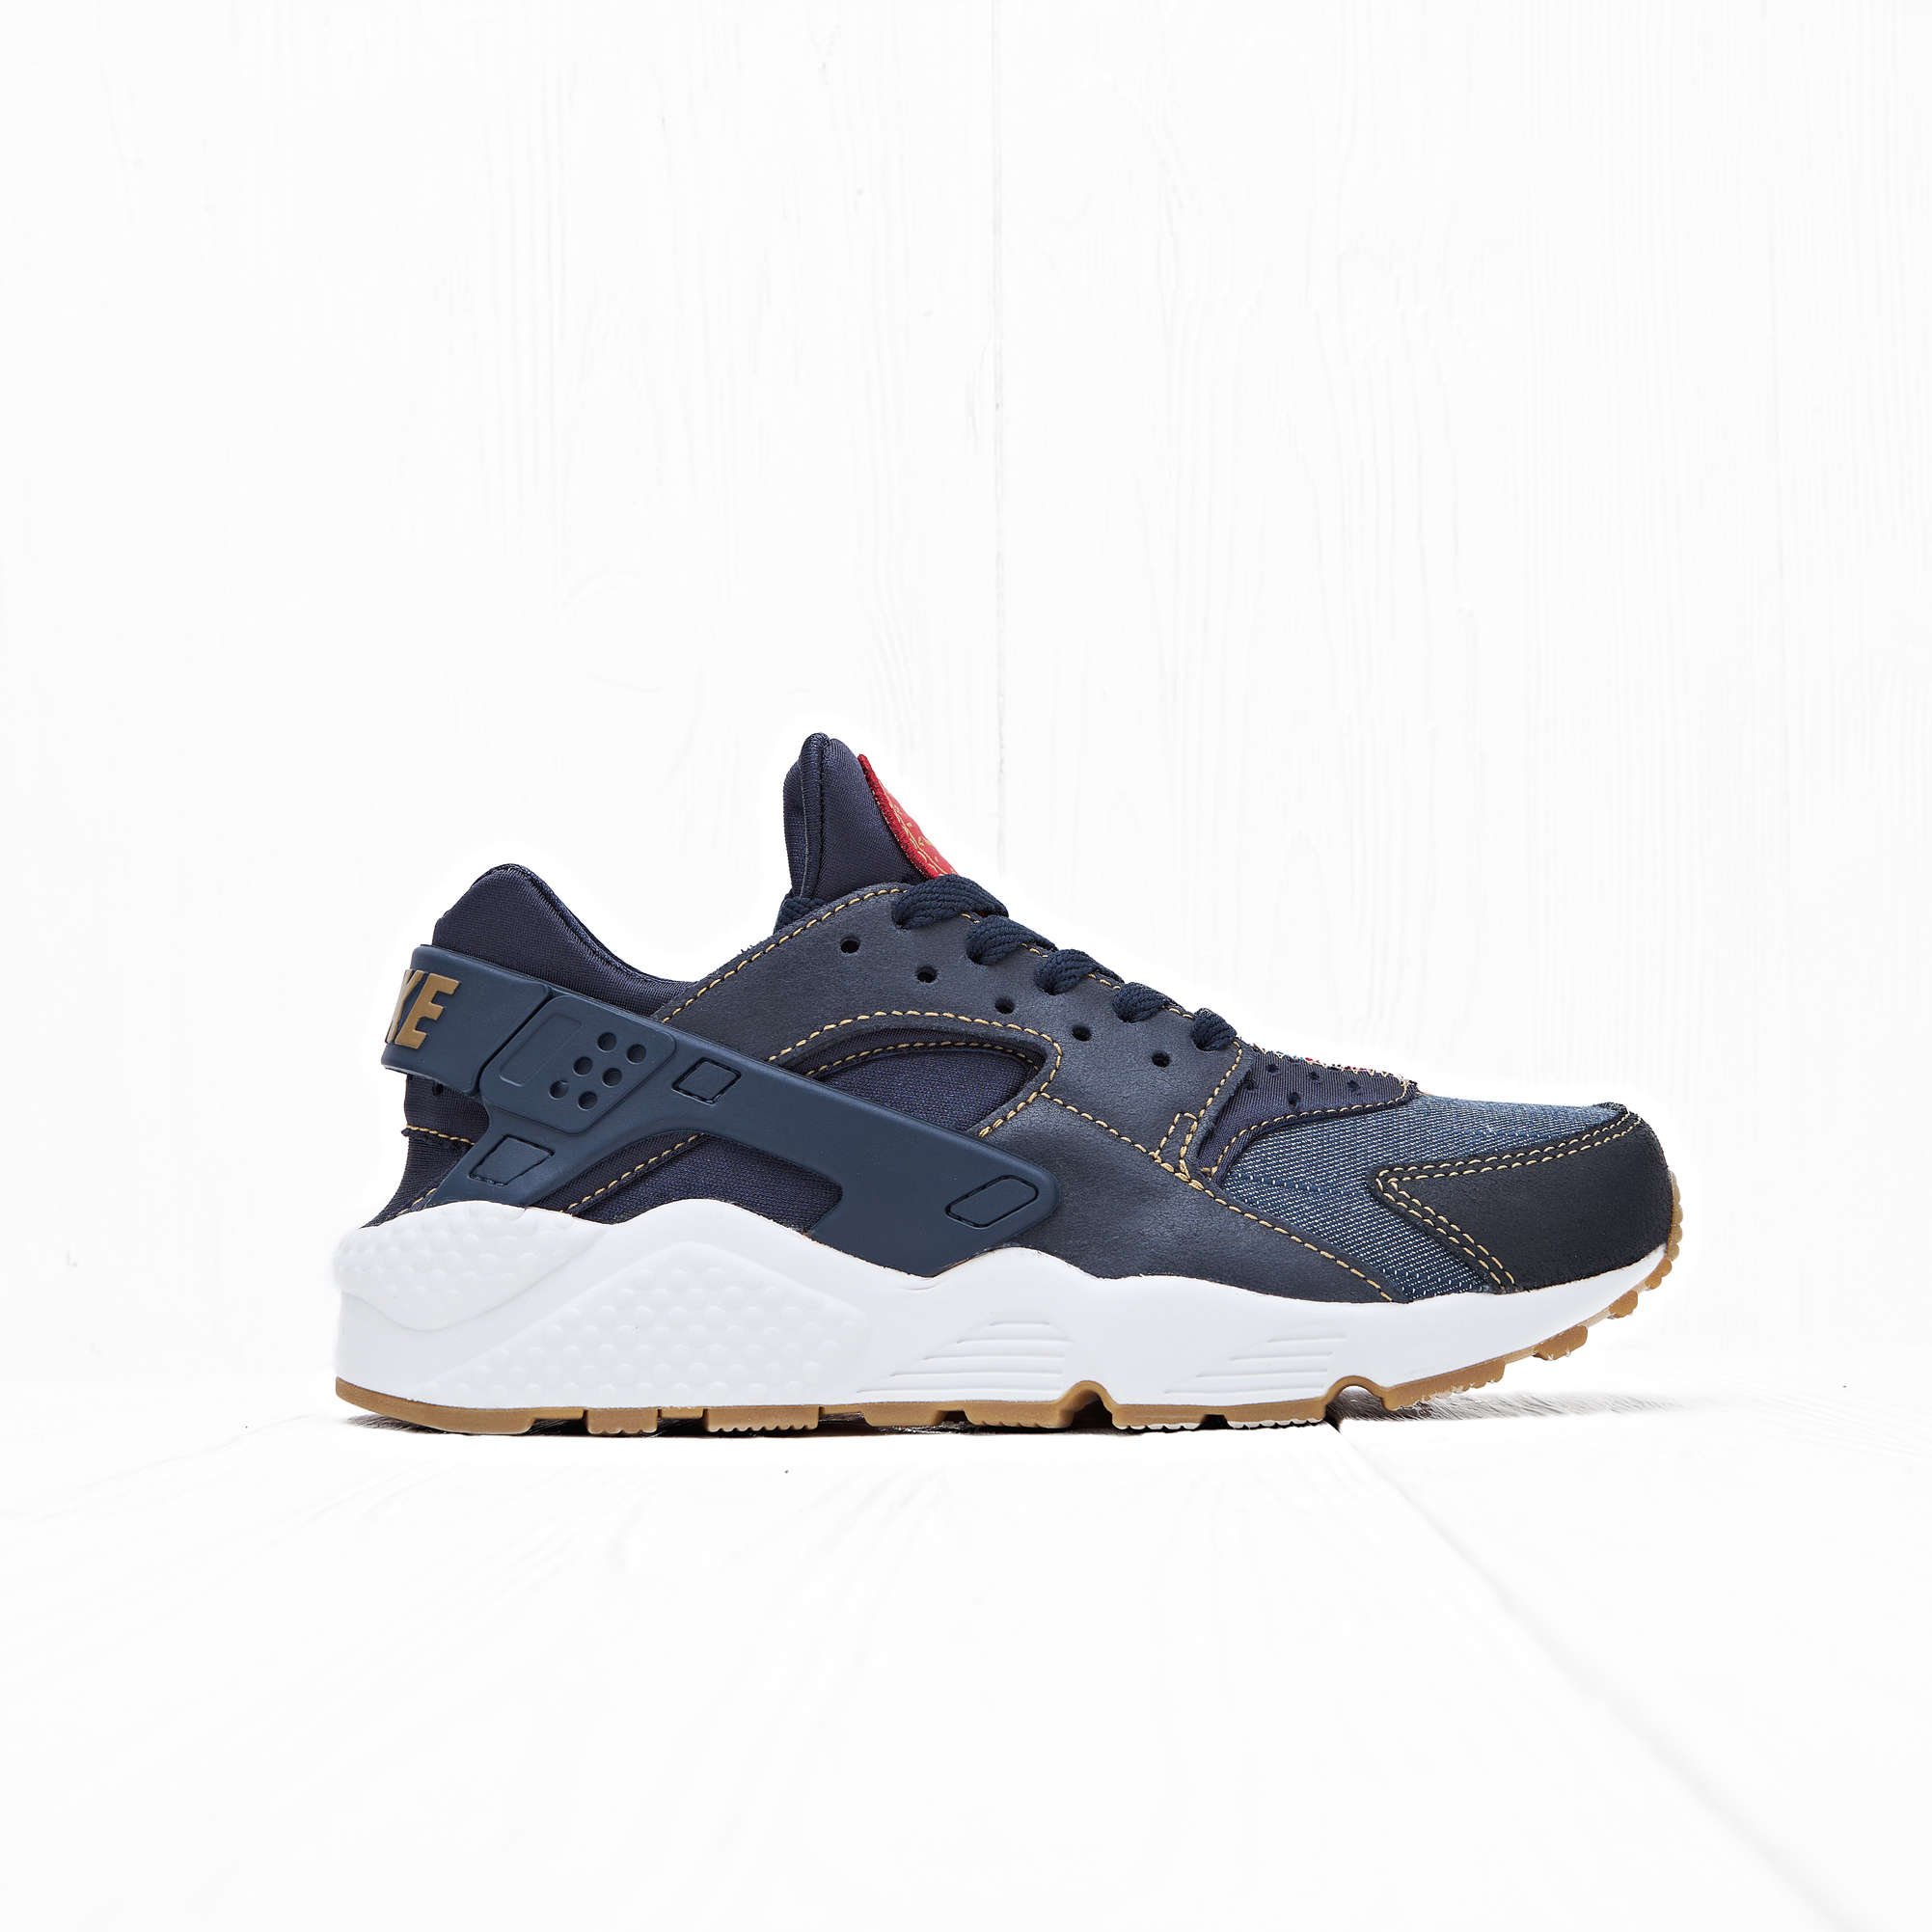 Кроссовки Nike AIR HUARACHE RUN SE Dark Obsidian/Dark Obsidian-Summit White